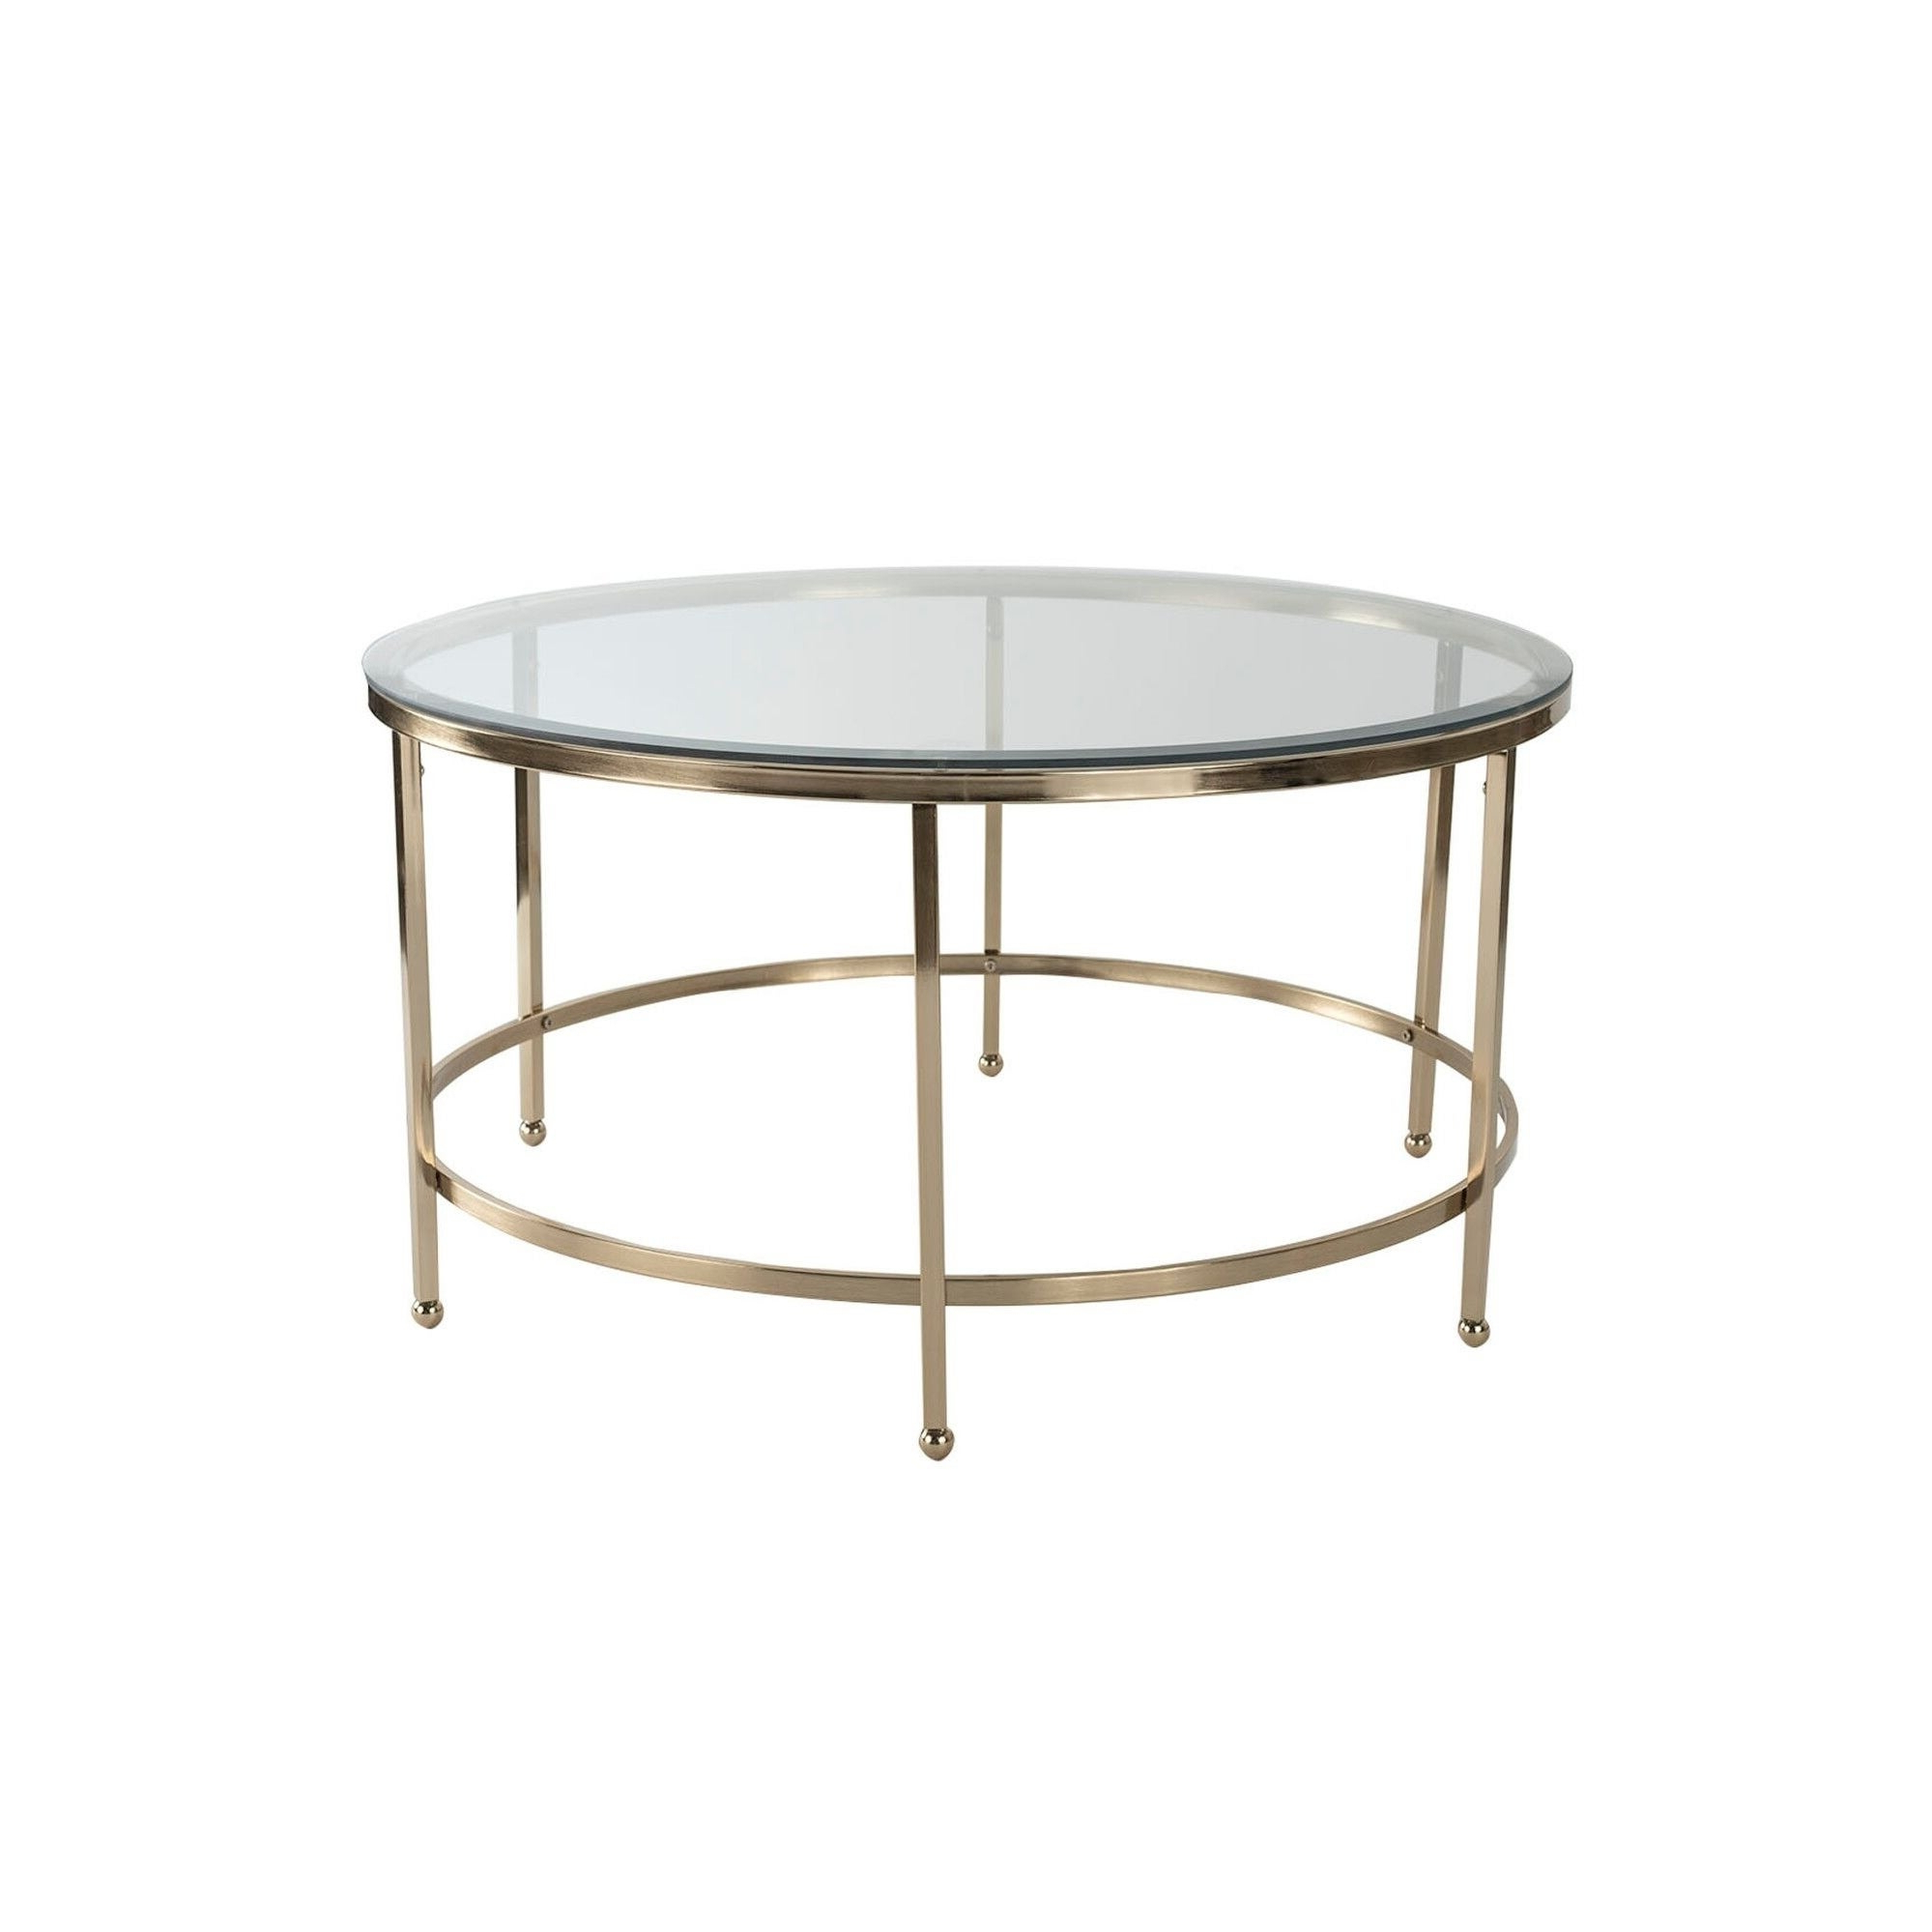 2019 Furniture Of America Orelia Brass Luxury Copper Metal Coffee Tables Throughout Adore Decor Addison Coffee Table, Gold (View 1 of 20)